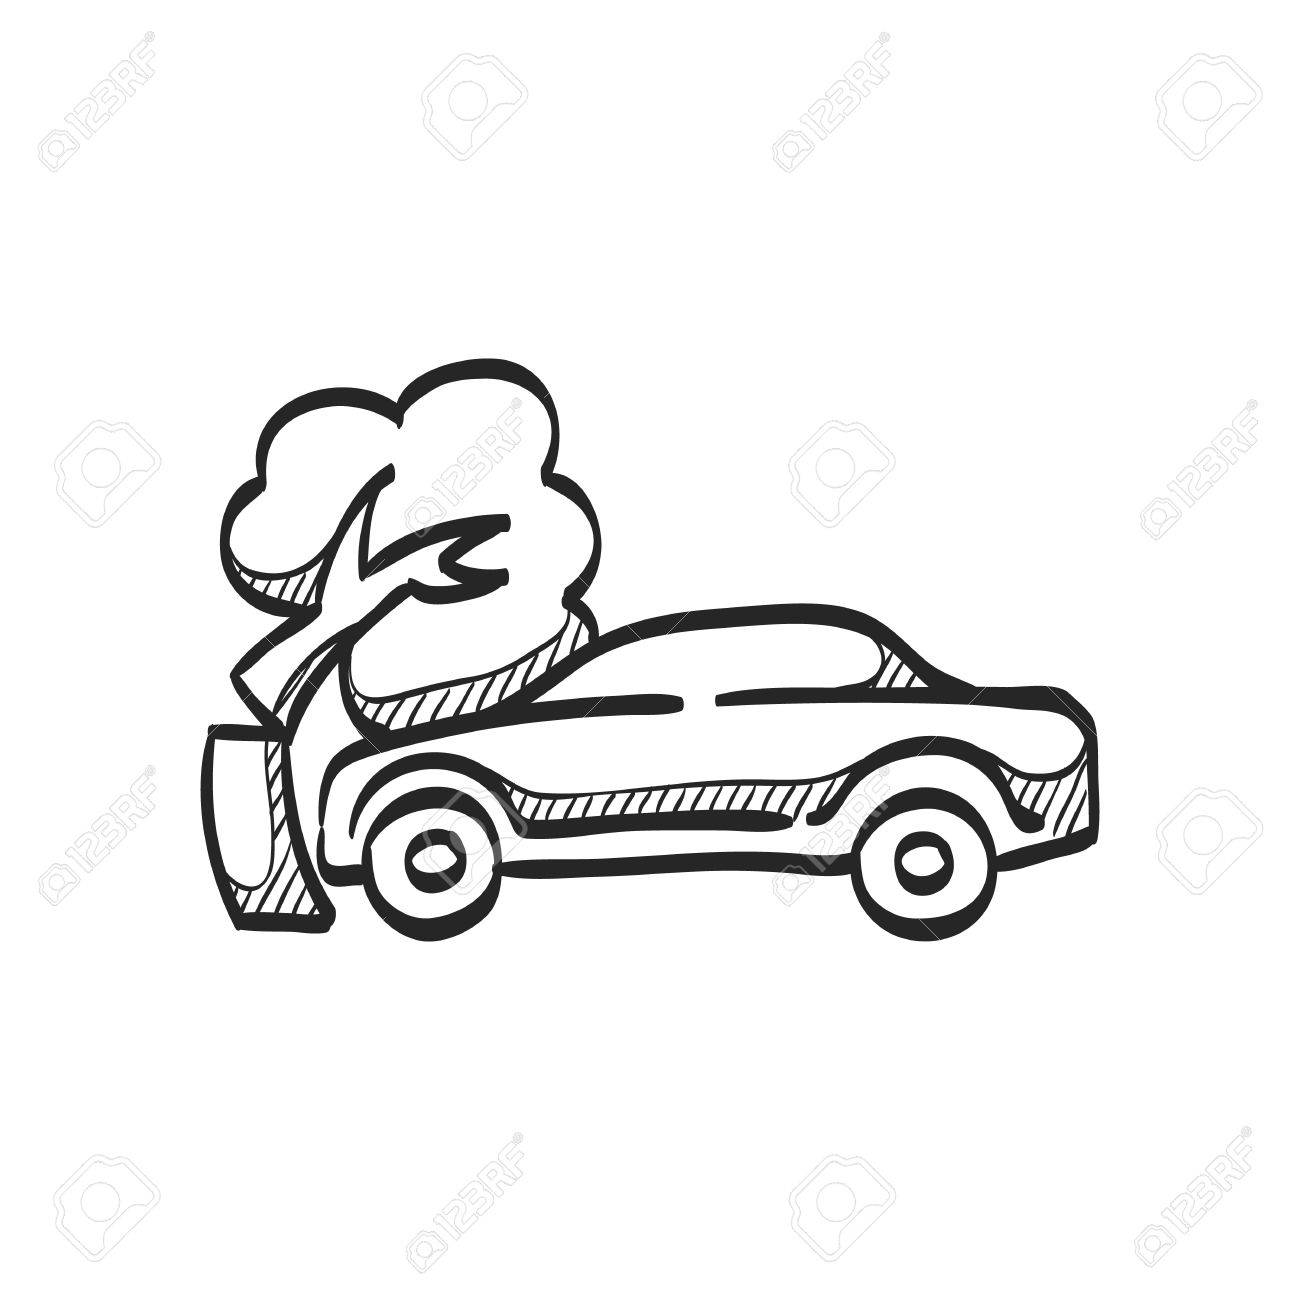 Car Crash Icon In Doodle Sketch Lines. Automotive Accident Incident ...